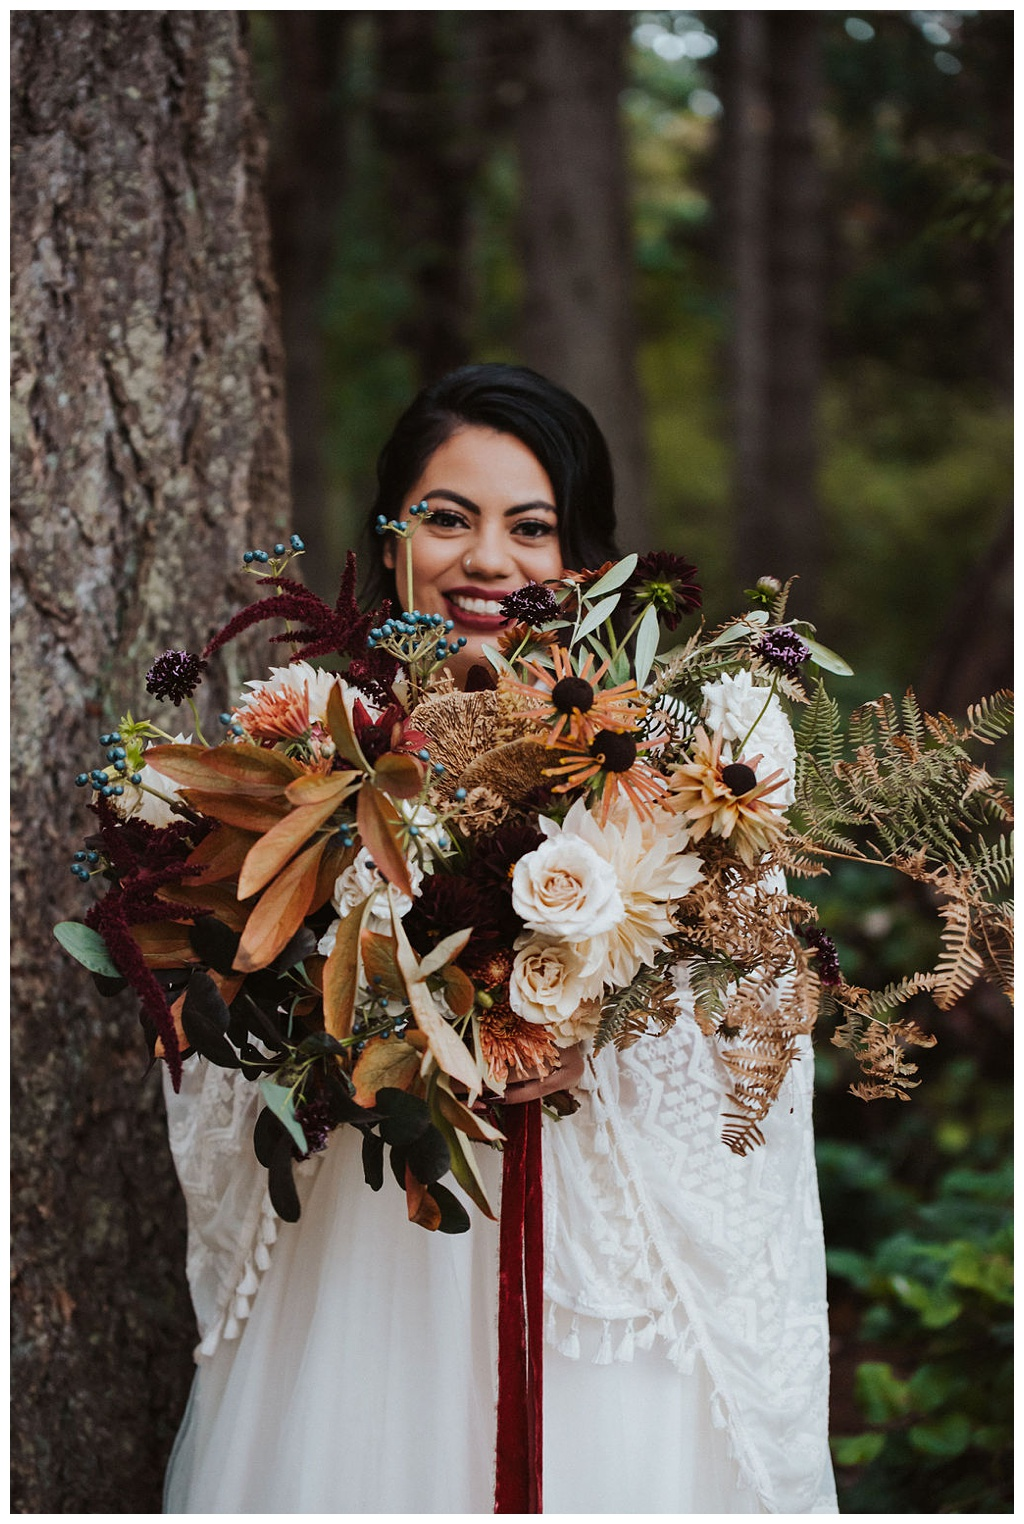 A bride holding her fall bouquet with roses, dahlias, and foraged foliage.